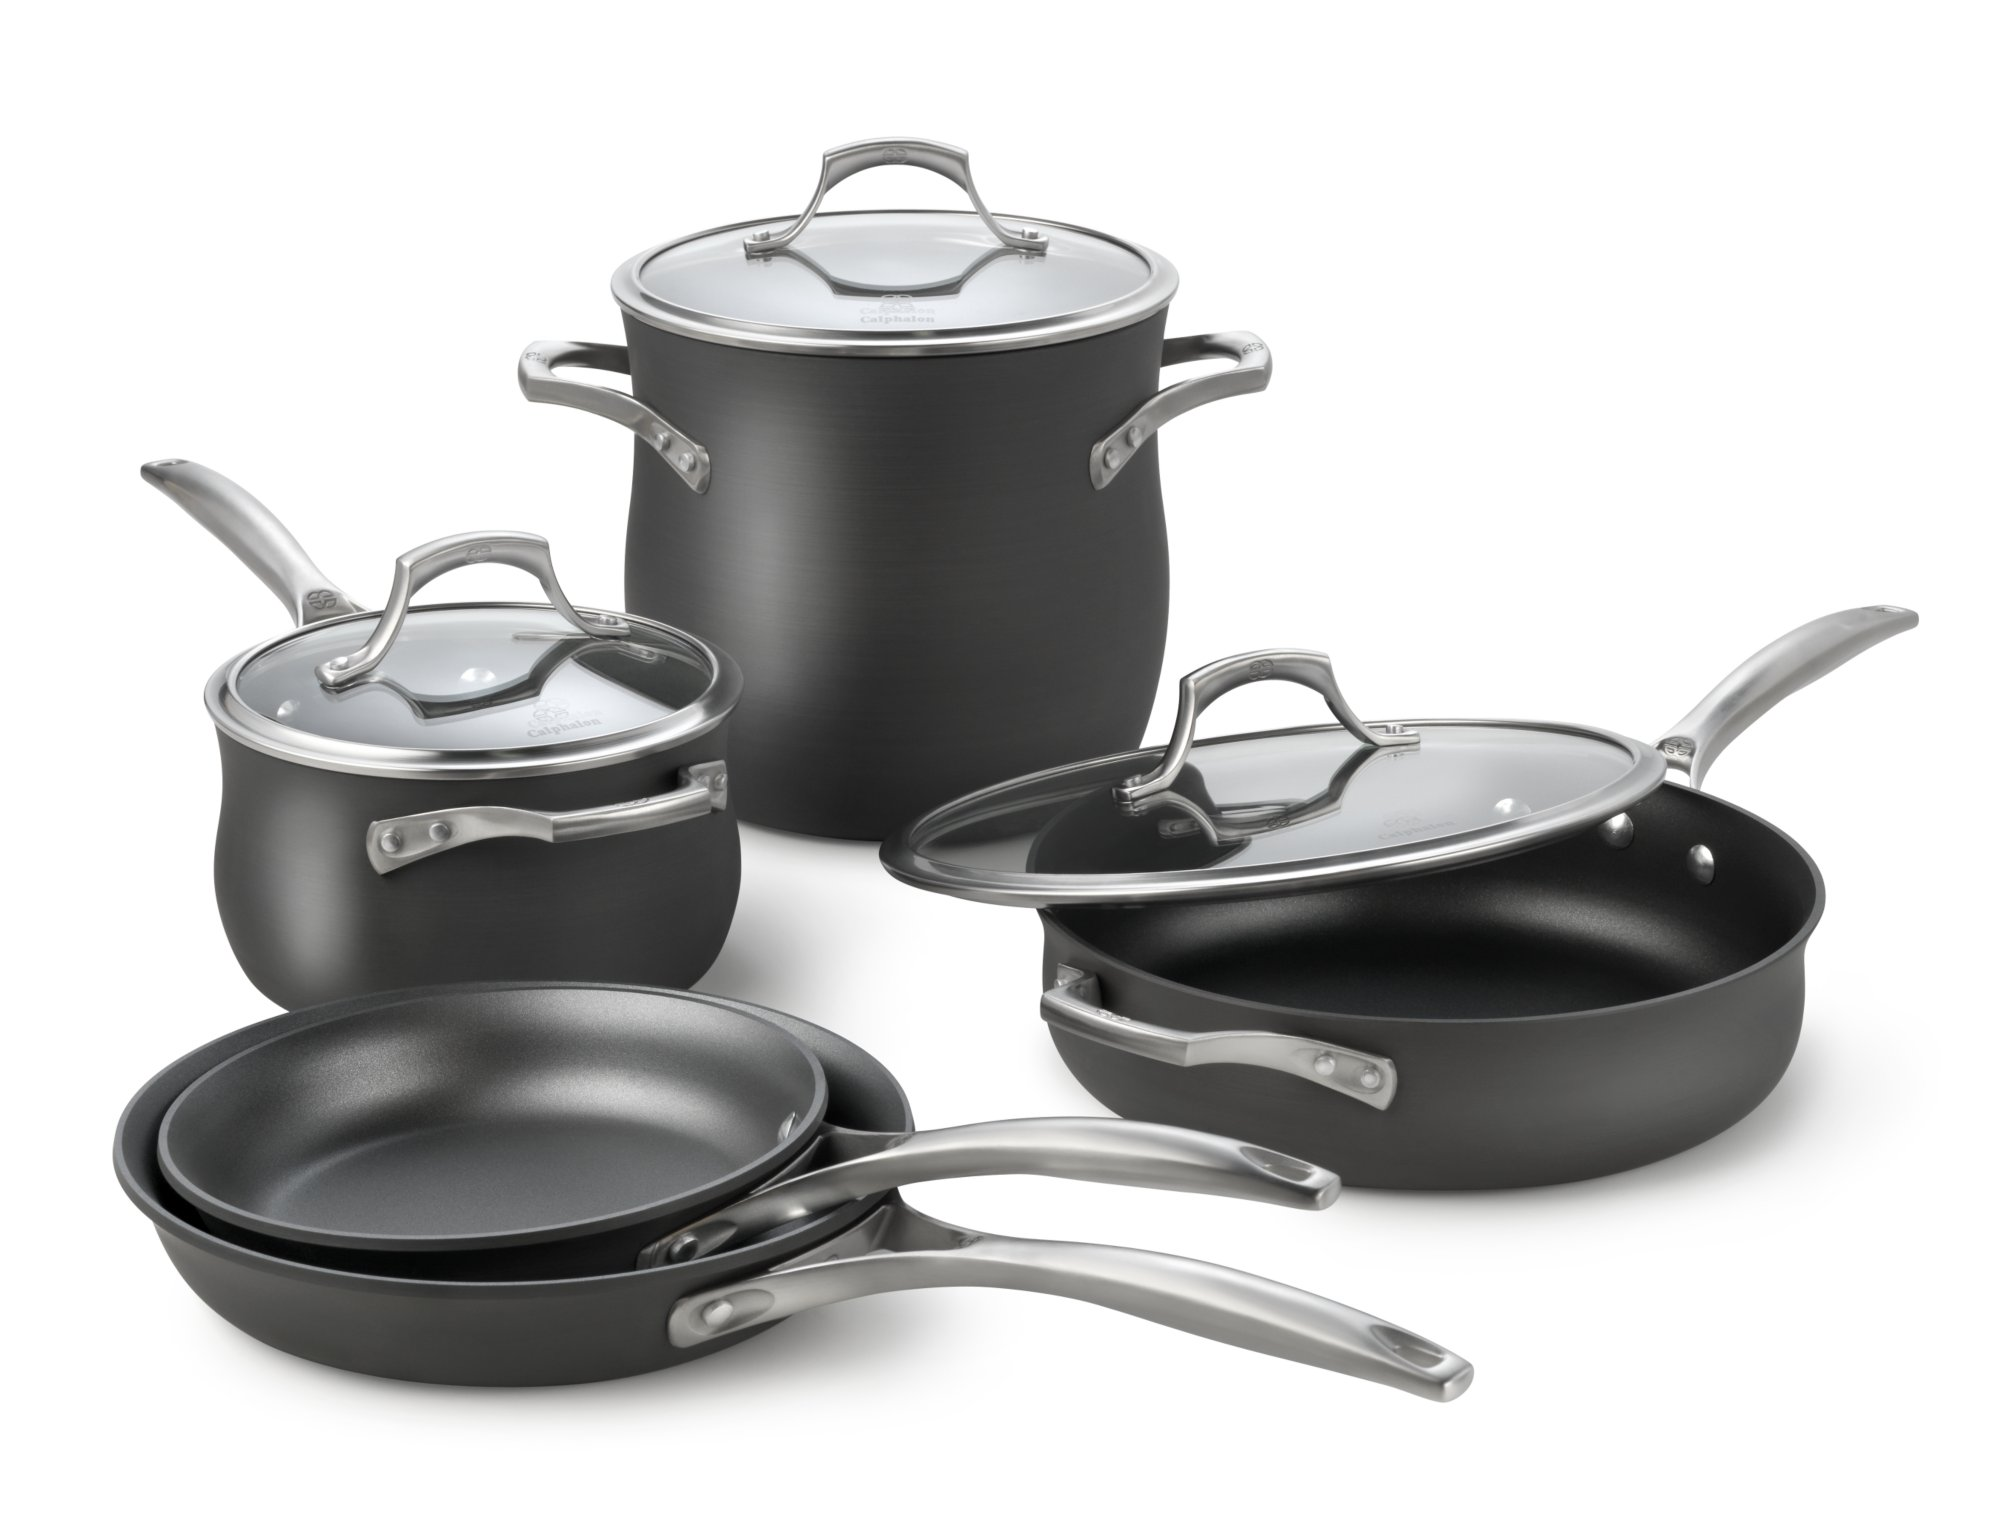 Calphalon Unison Nonstick 8-pc. Cookware Set